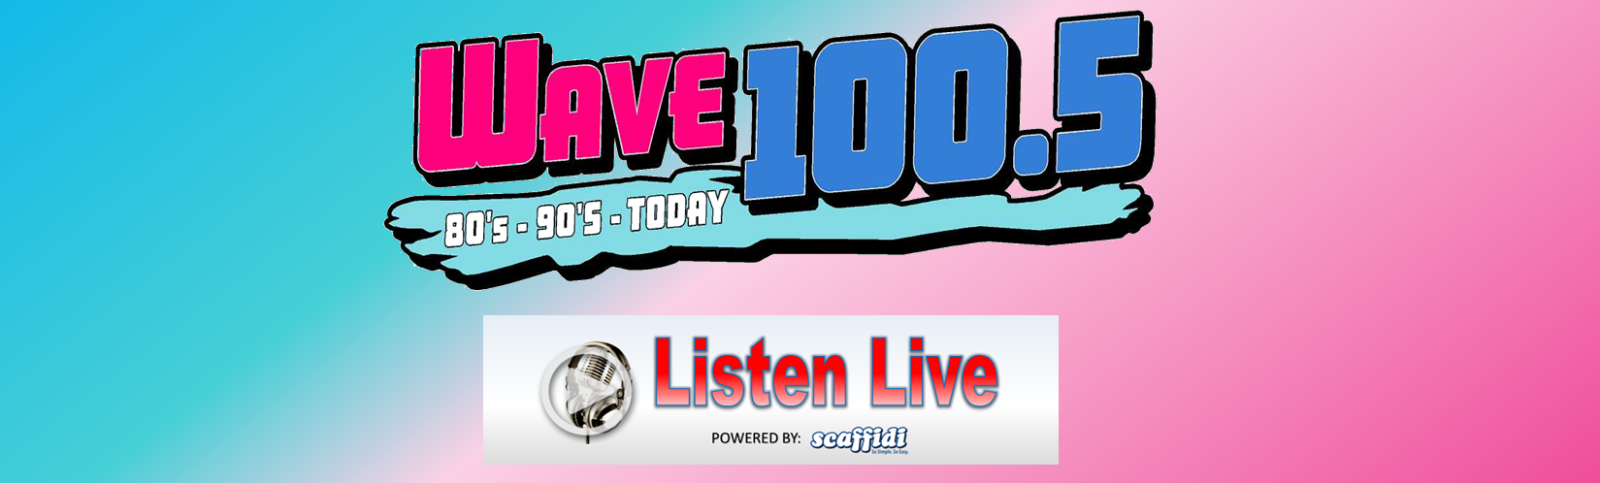 WAVE 100.5